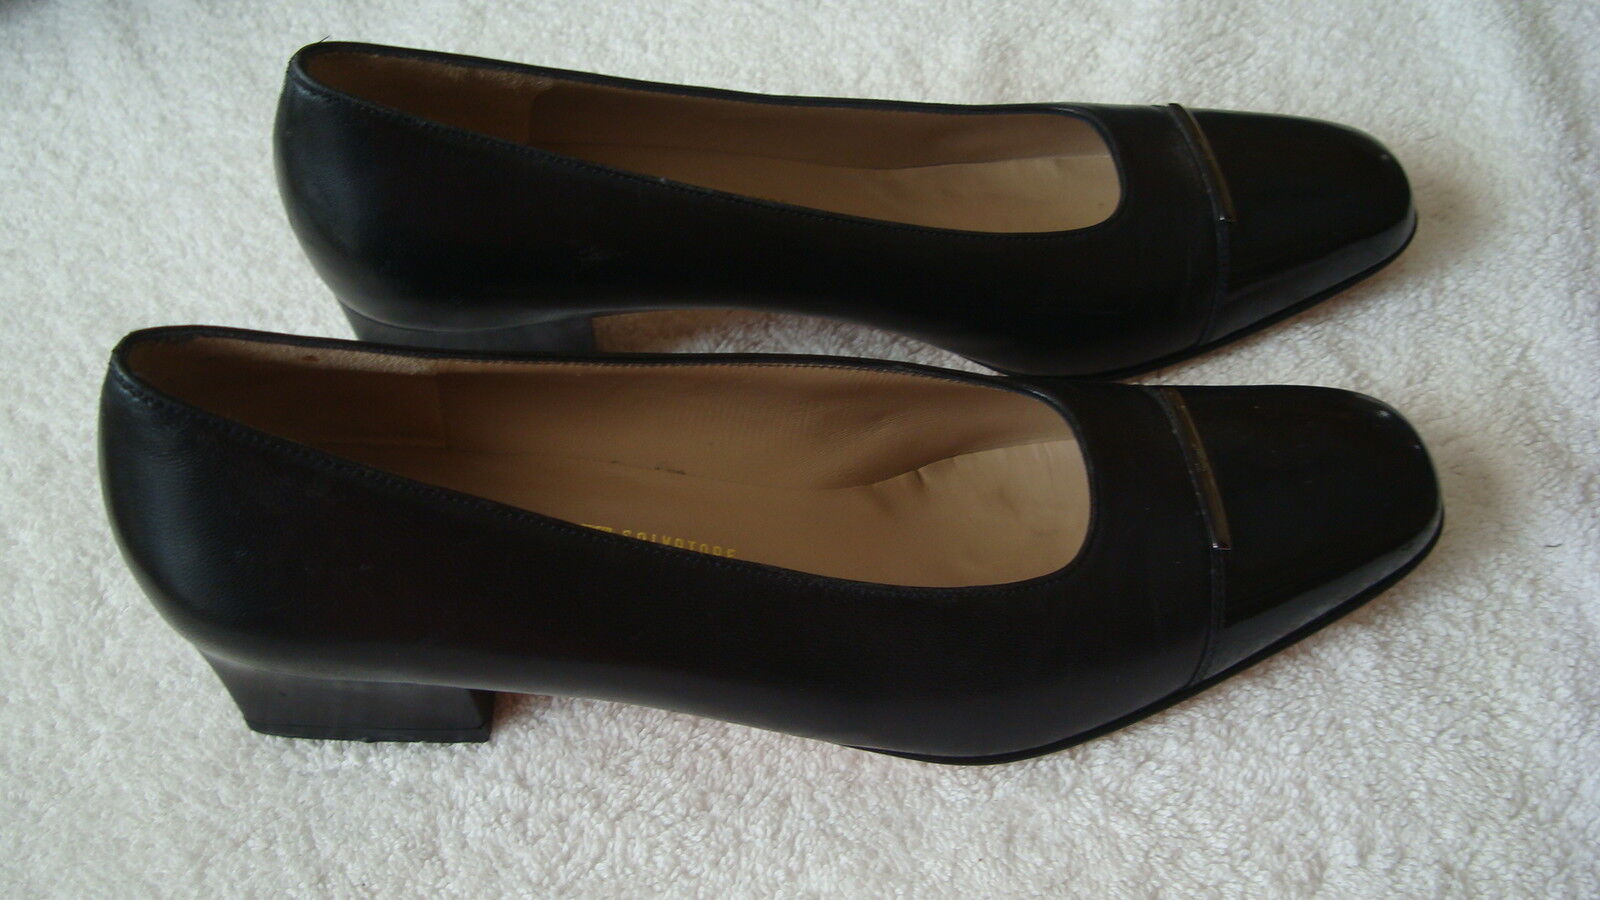 Womens Salvatore Ferragamo Black Leather WPatent Toe Pumps Heels-9.5/2A